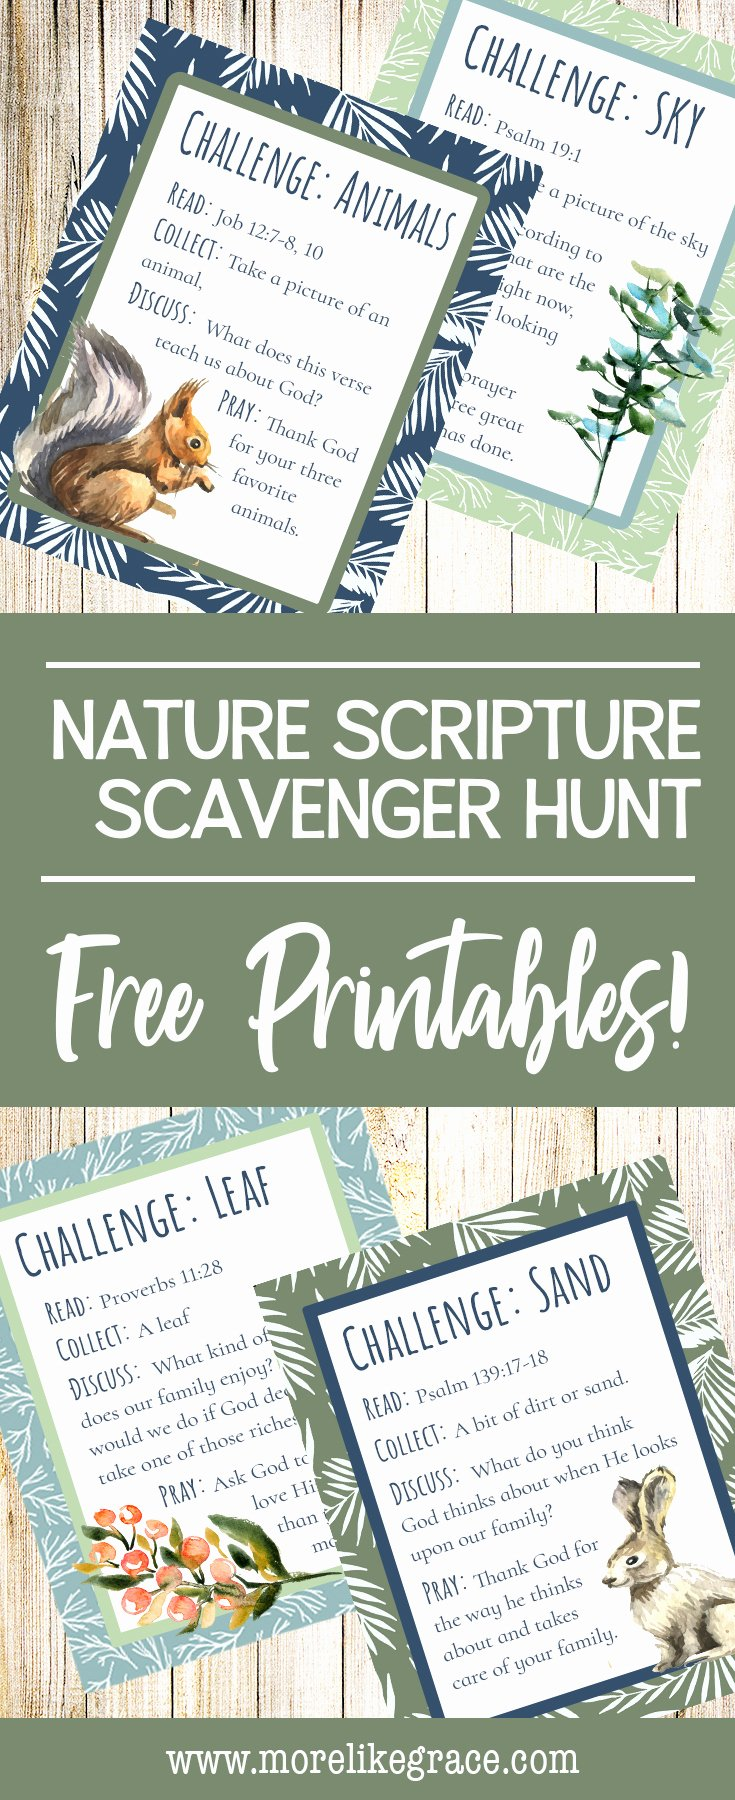 Bible Scavenger Hunt Worksheet New Nature Scripture Scavenger Hunt Family Fun with Purpose